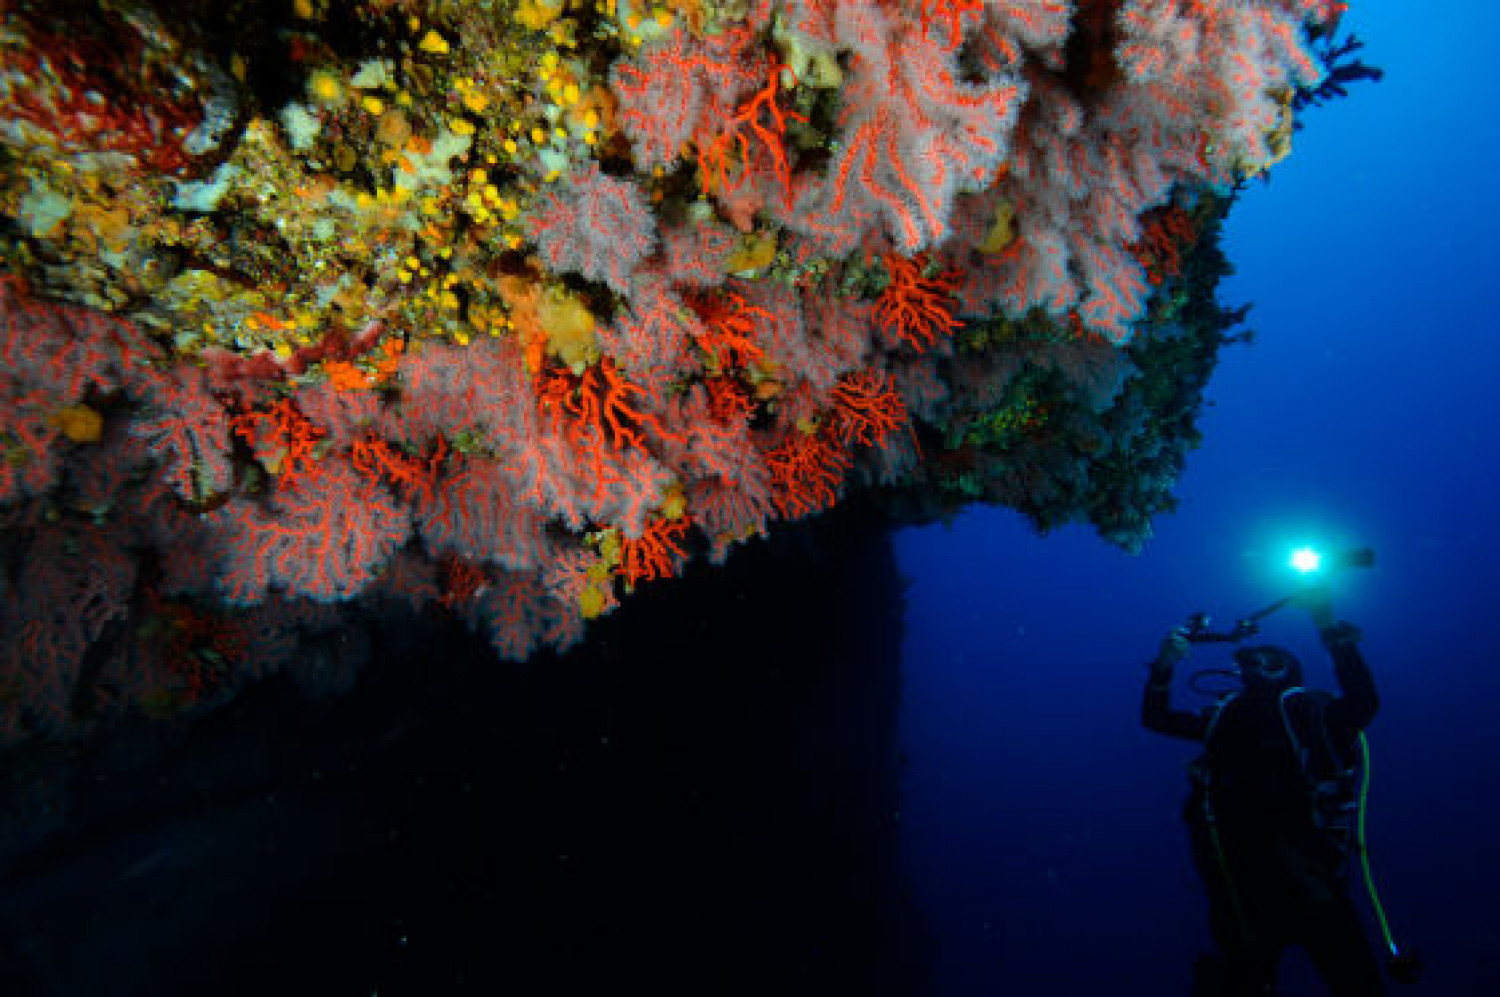 A researcher observing Red Gorgonia on a dive (Image: Joaquim Garrabou)